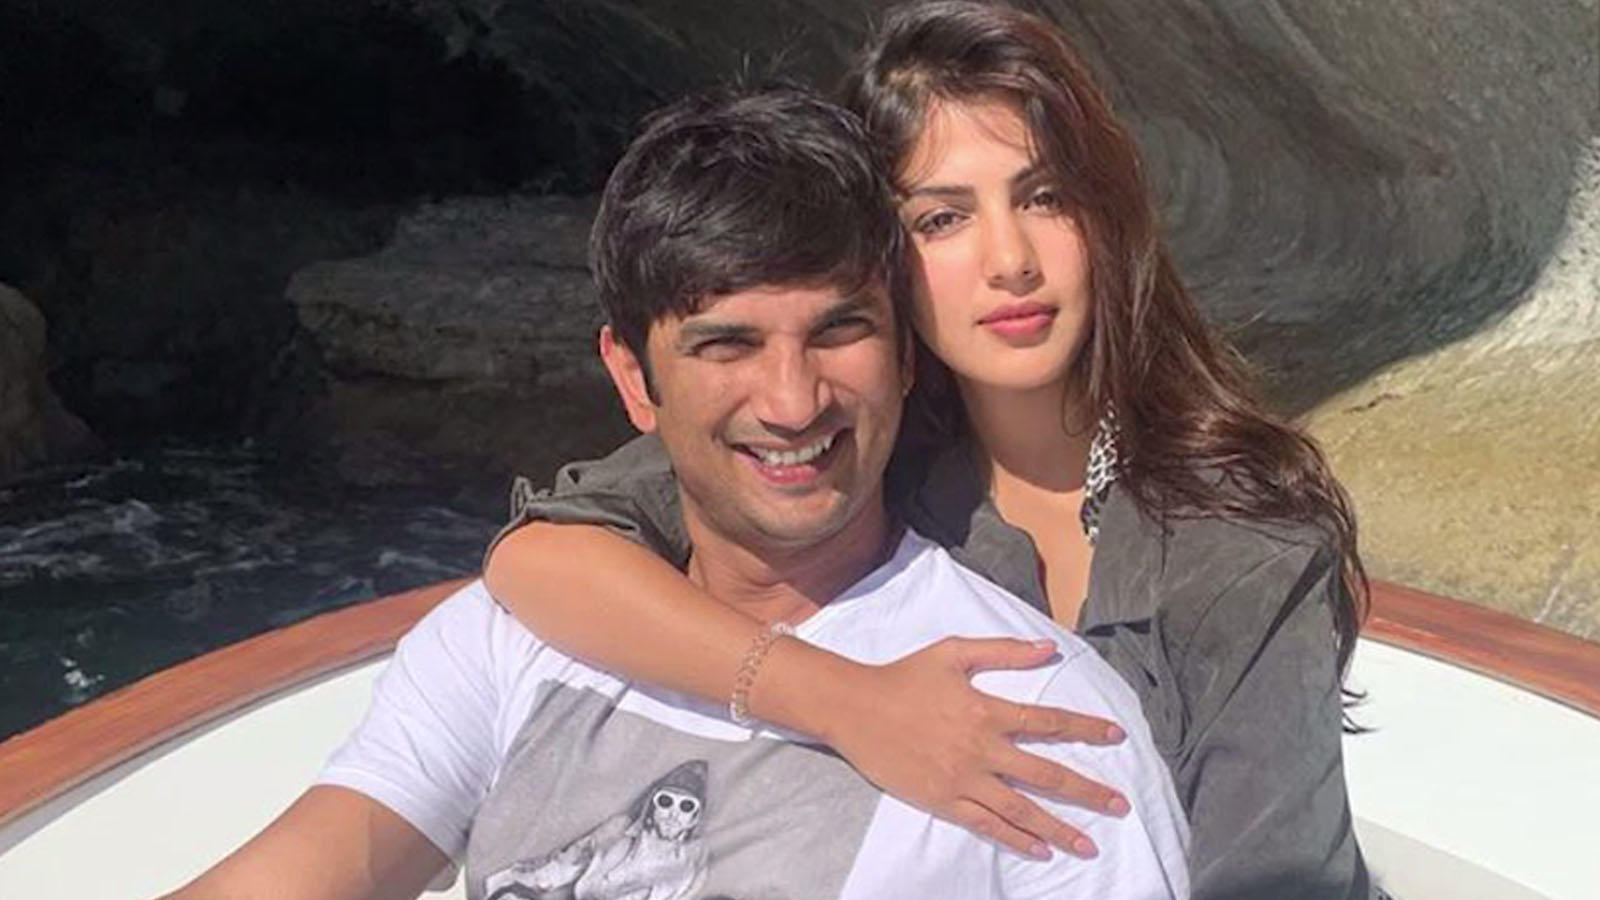 Sushant Singh Rajput rumoured girlfriend Rhea Chakraborty revealed her wedding plans with Sushant Singh Rajput to her property dealer?